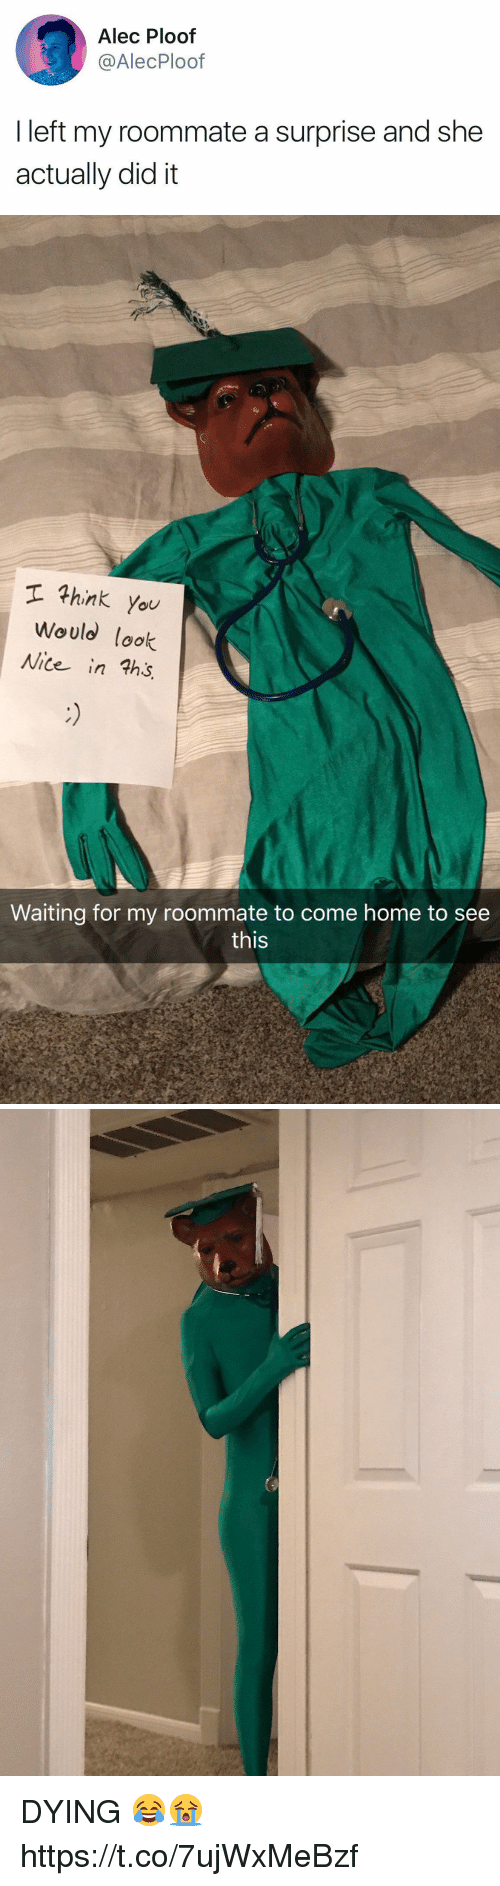 Roommate, Home, and Girl Memes: Alec Ploof  @AlecPloof  I left my roommate a surprise and she  actually did it   hink you  Would lok  Nite in ths  Waiting for my roommate to come home to see  this DYING 😂😭 https://t.co/7ujWxMeBzf